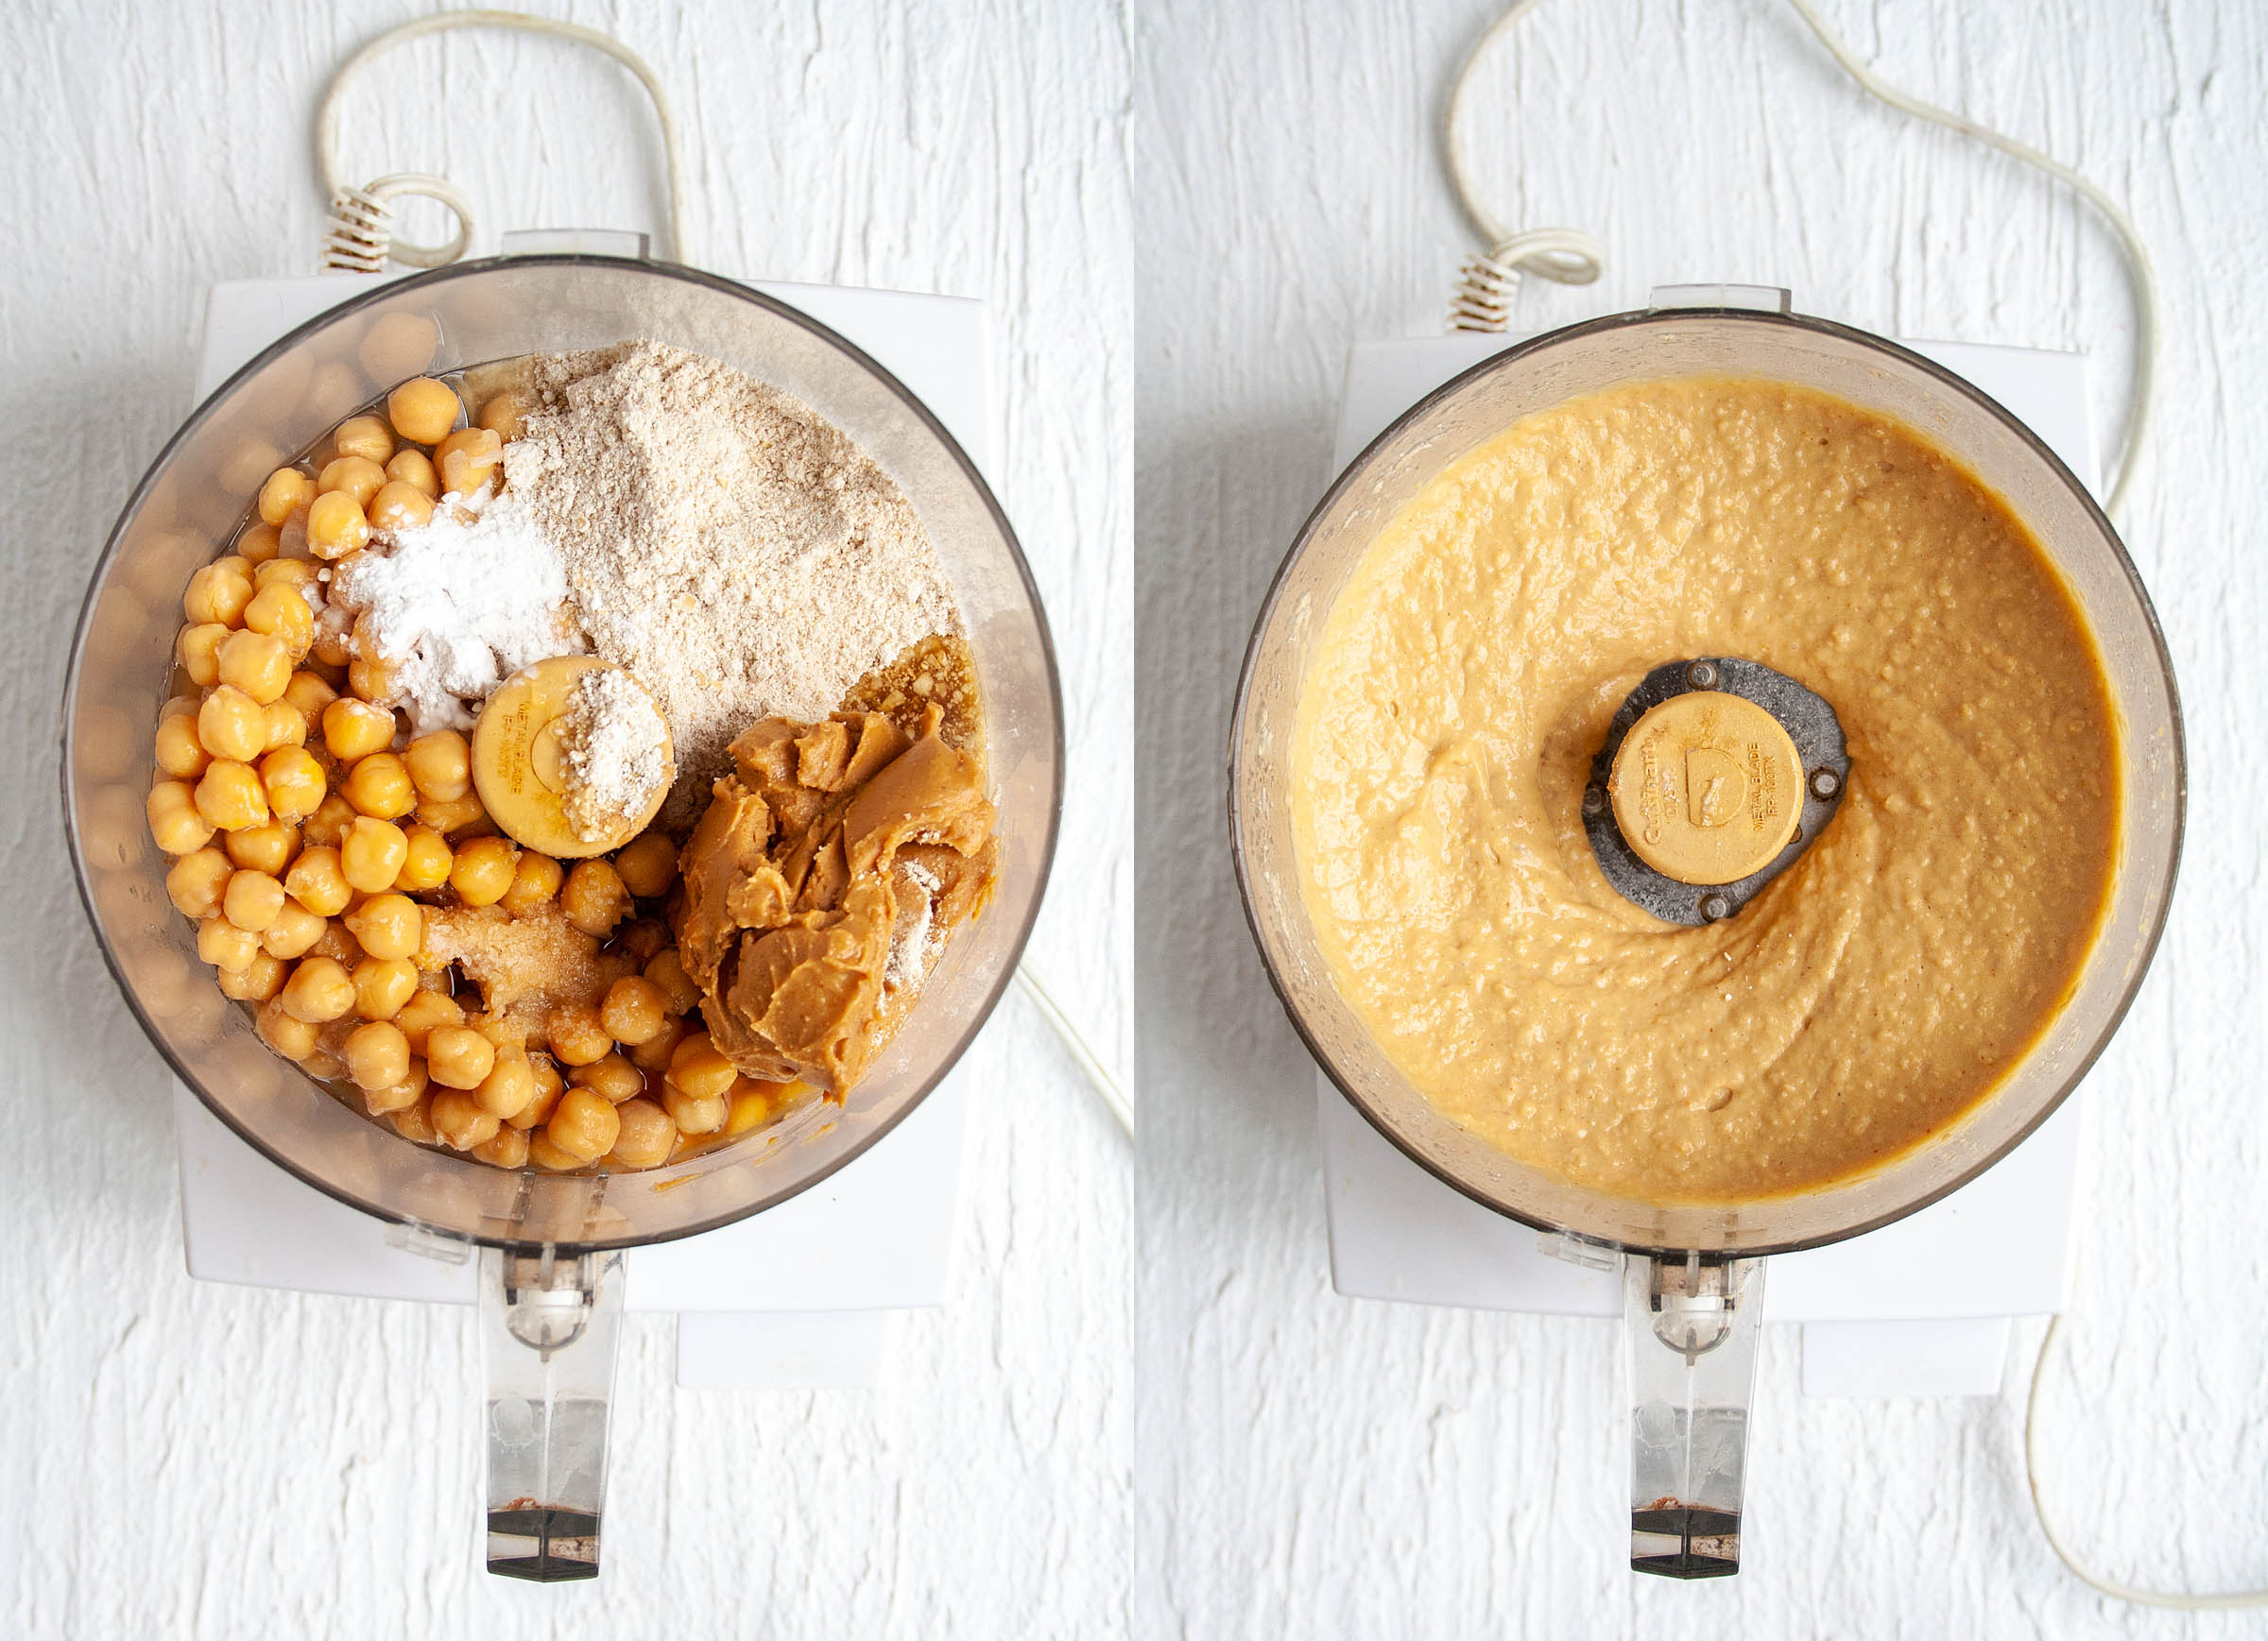 Chickpeas, oat flour, peanut butter, maple syrup, vanilla extract, baking powder, and salt in a food processor before and after mixing.